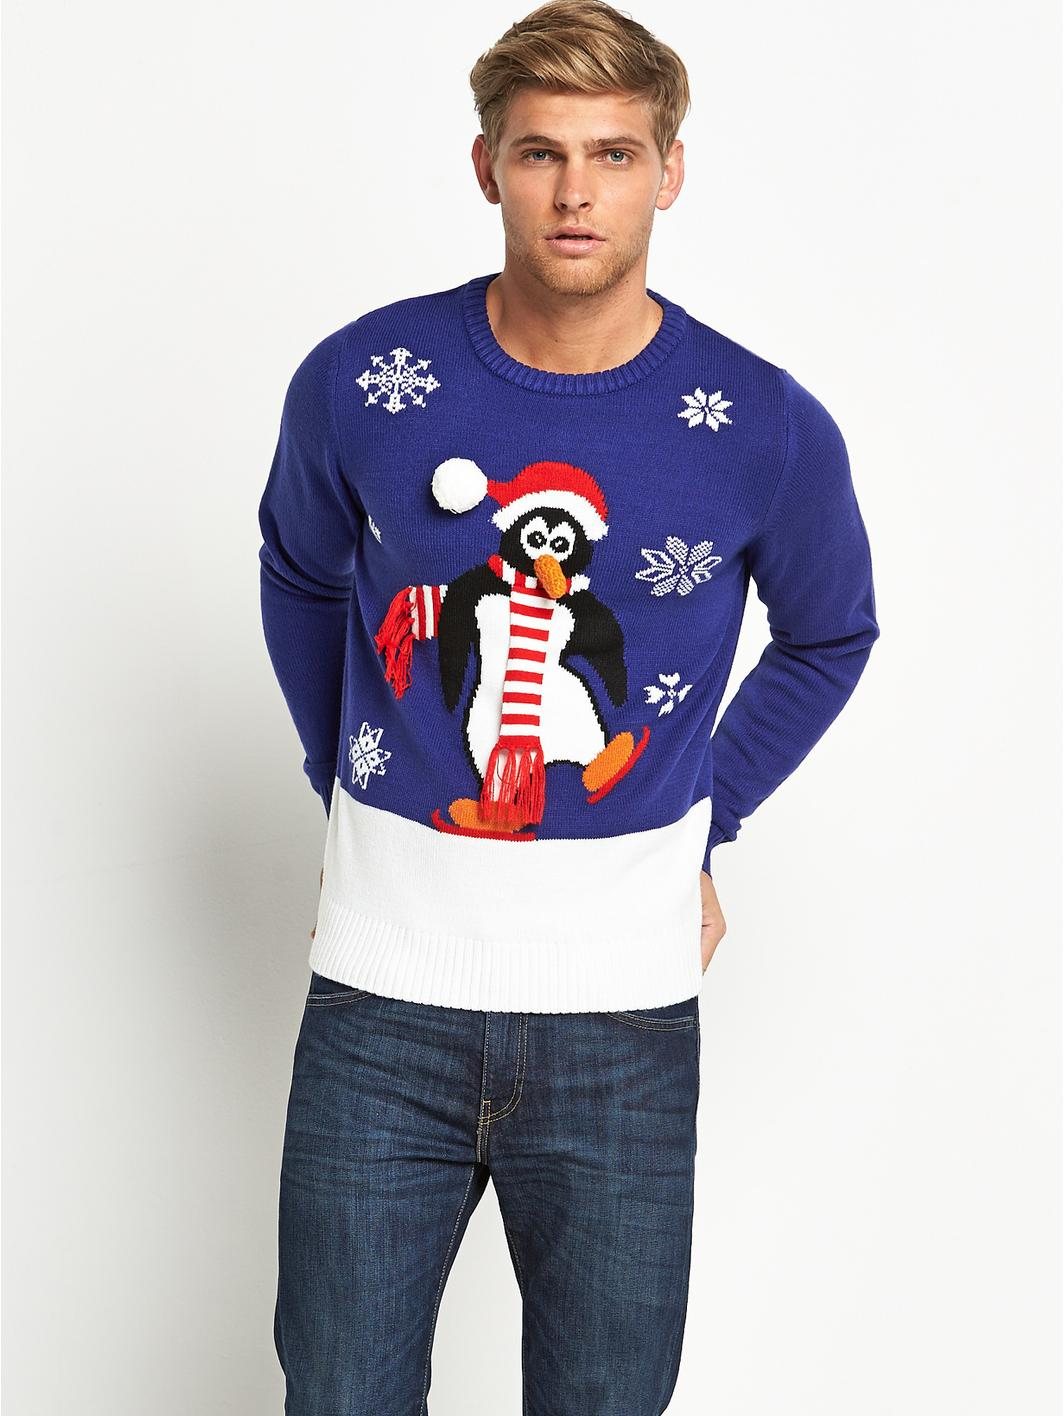 Christmas jumper9